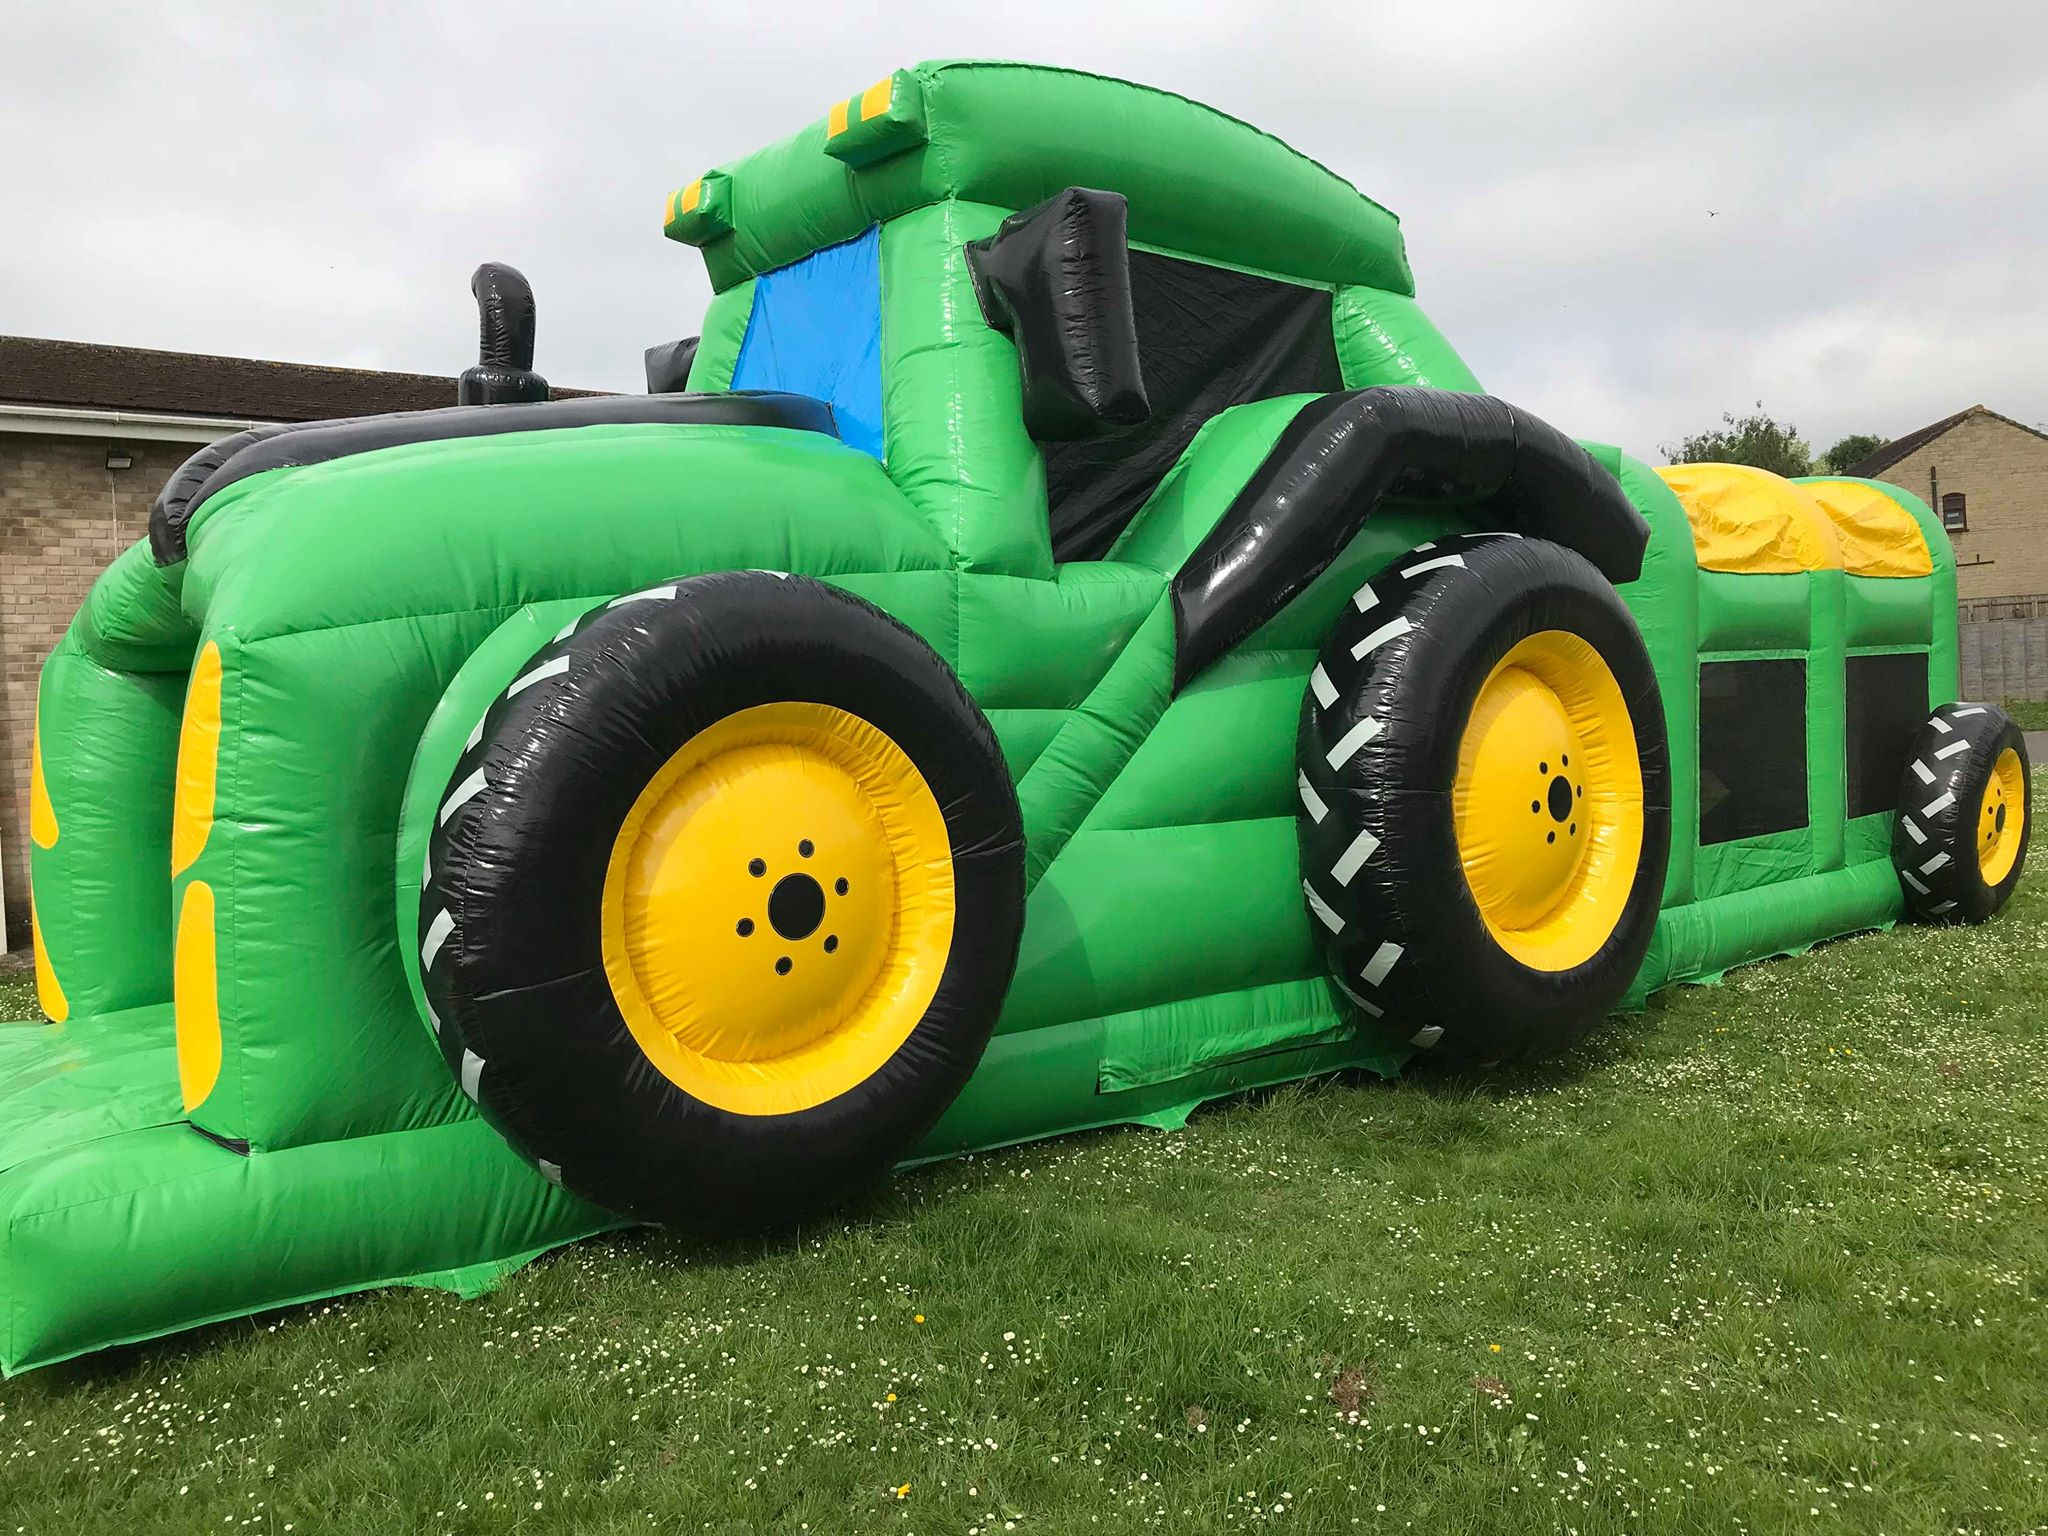 Tractor Assault Course